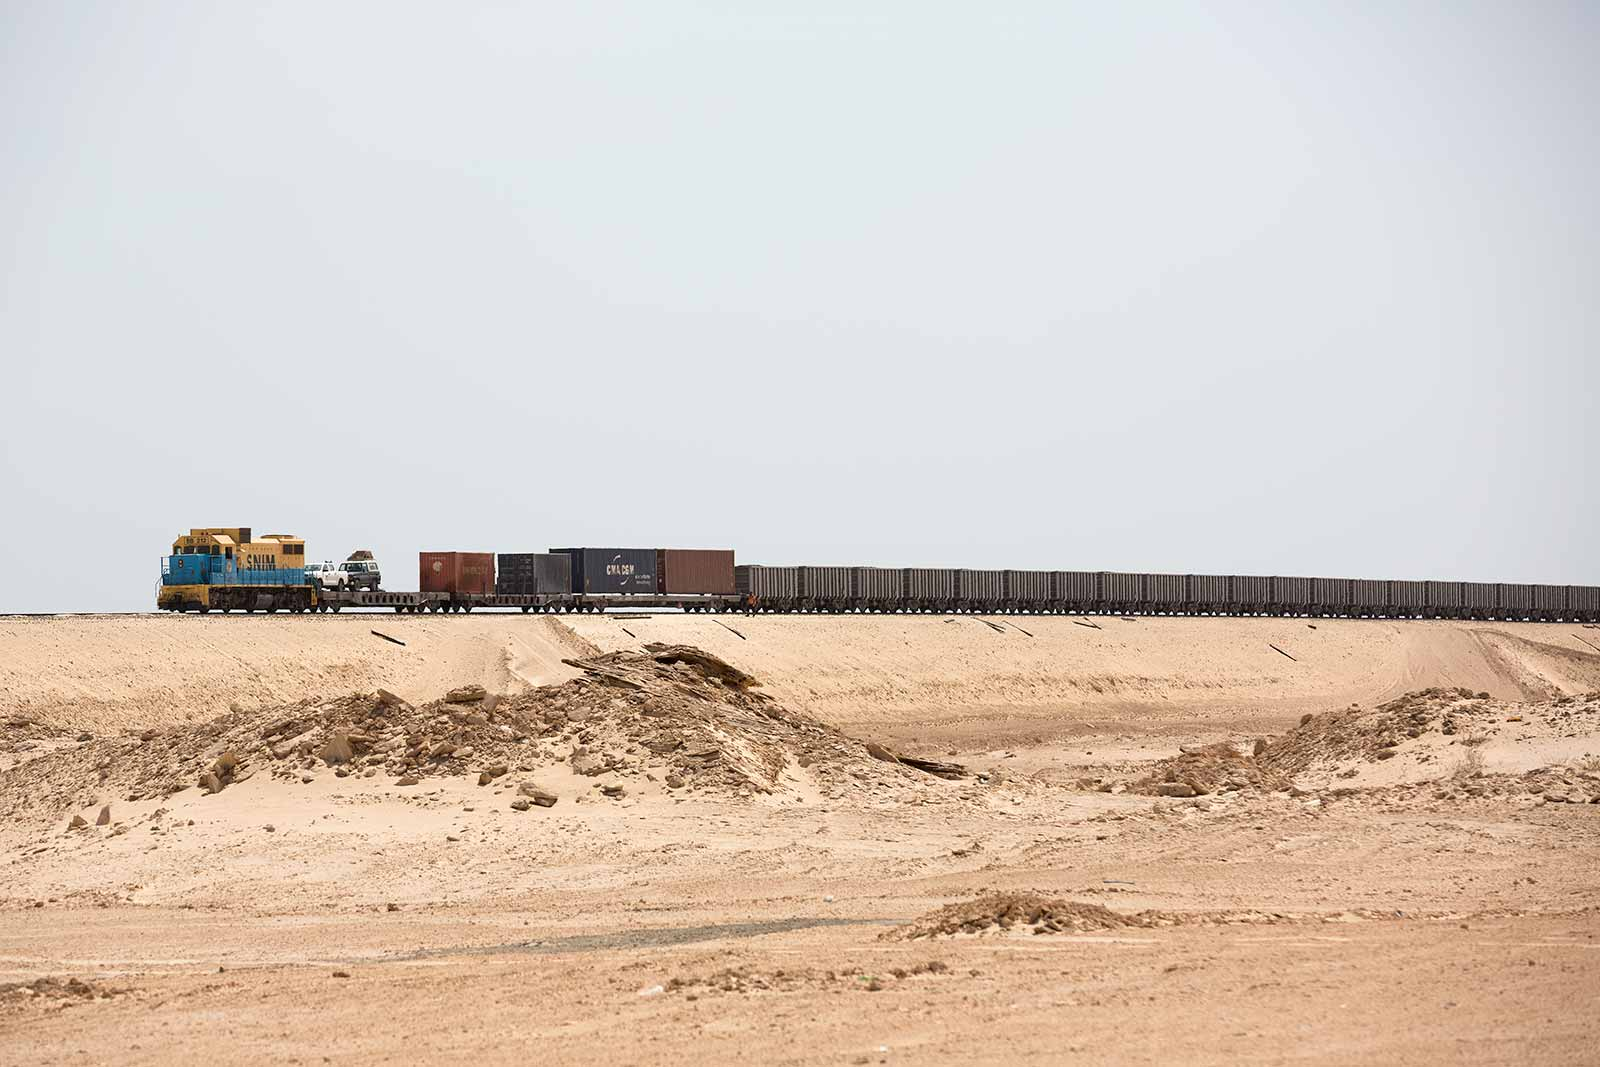 Two or three trains make a daily departure to pick up iron ore from a mine in Eastern Mauritania.